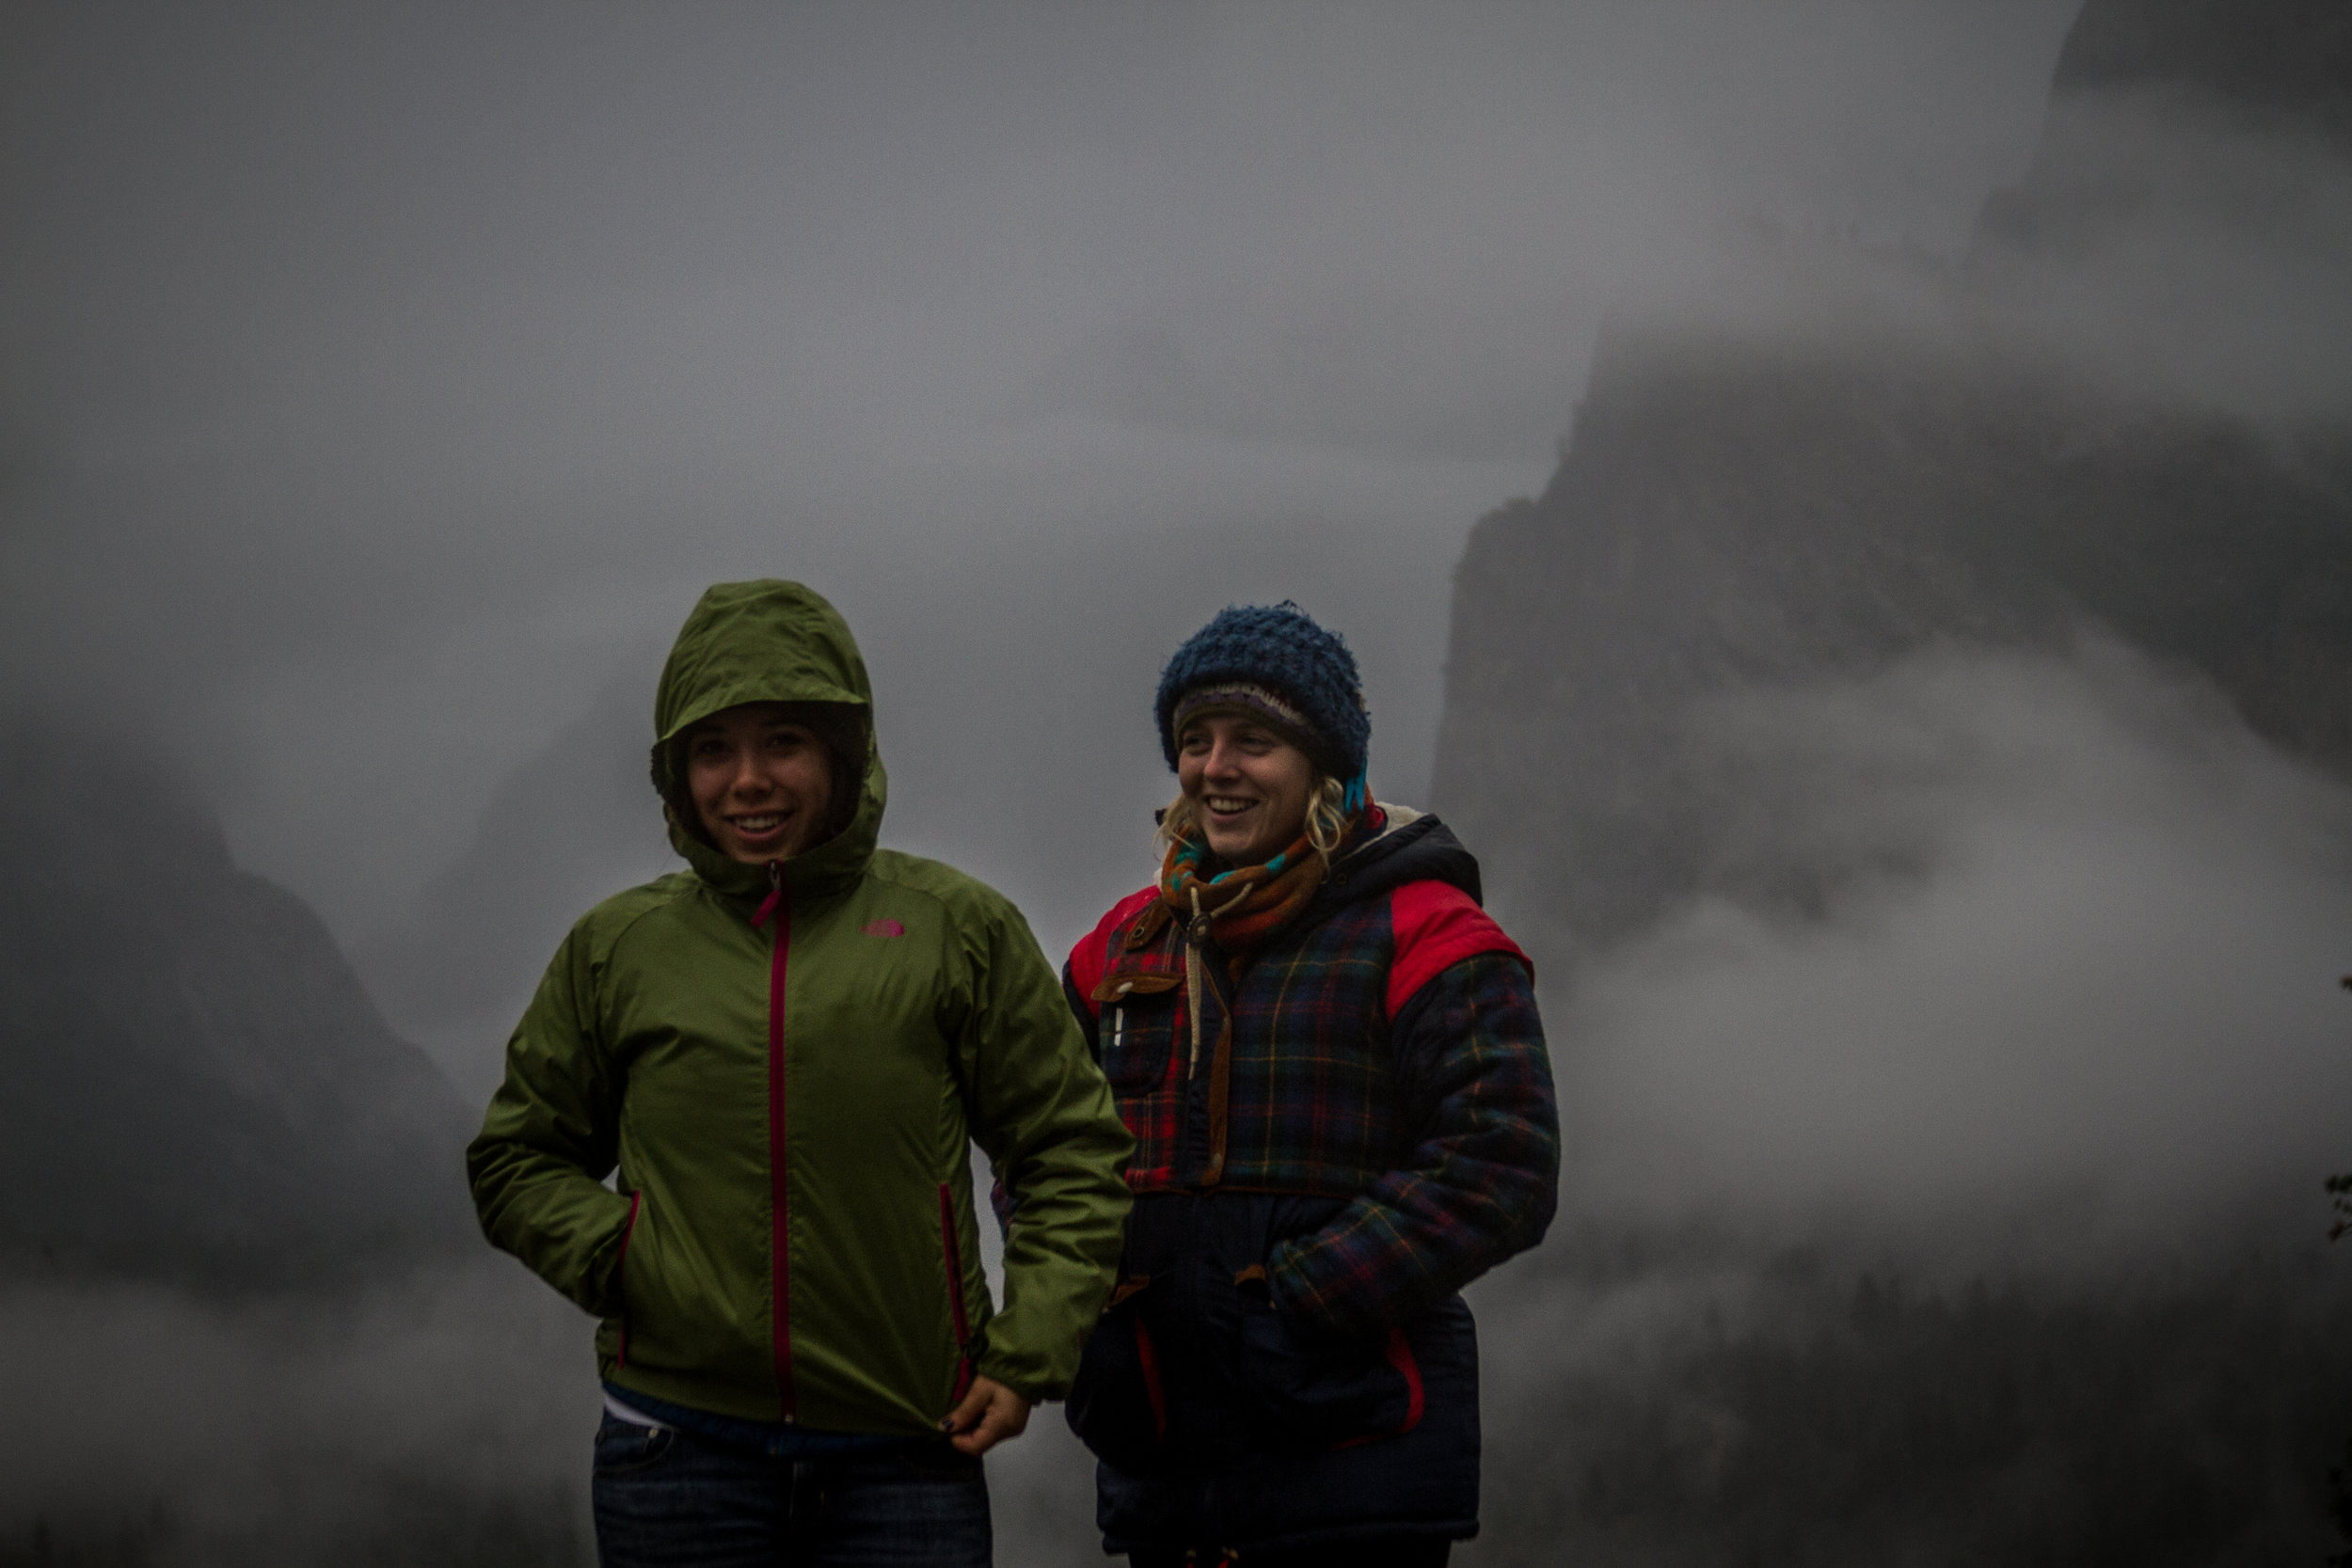 Yosemite Valley - Tunnel View on a Foggy Day